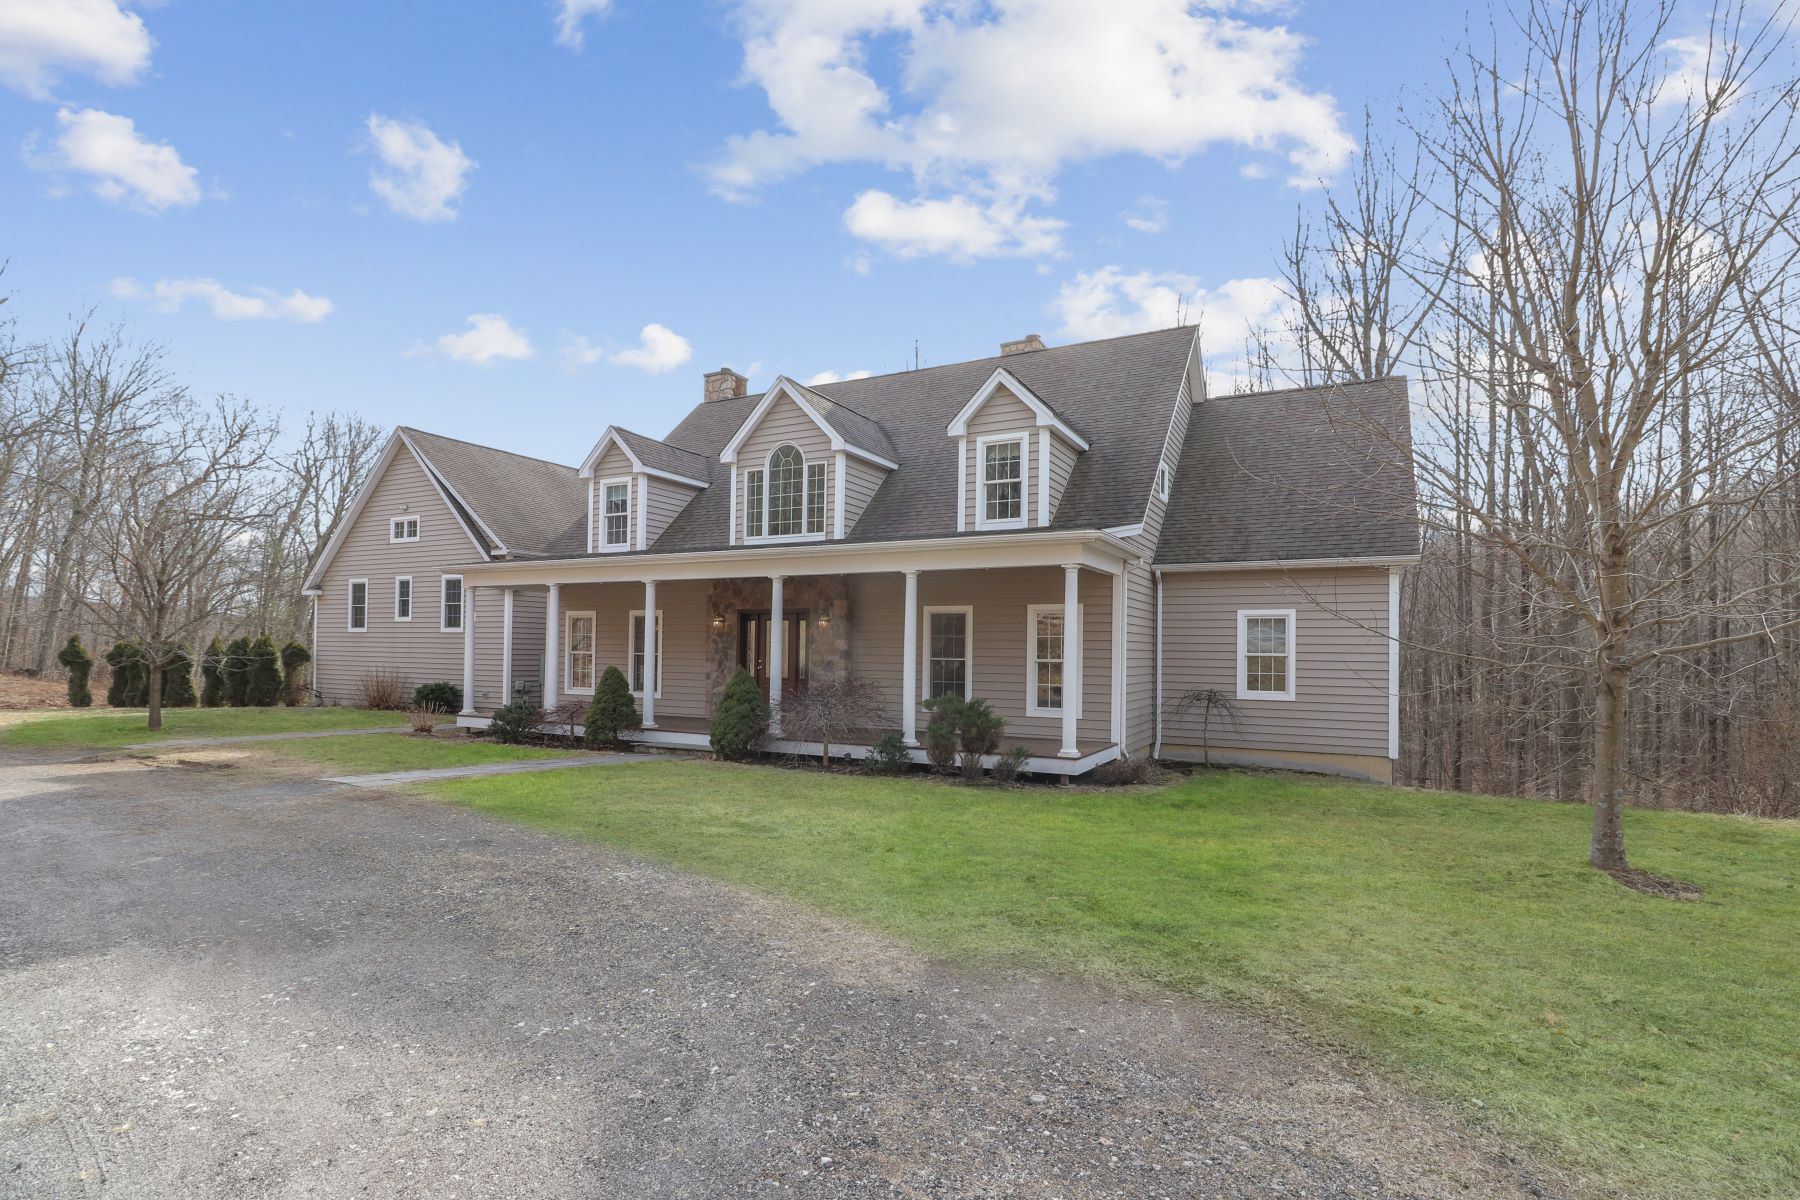 Single Family Homes for Sale at Well Maintained Colonial 3 Pound Sweet Hill, Bethel, Connecticut 06801 United States